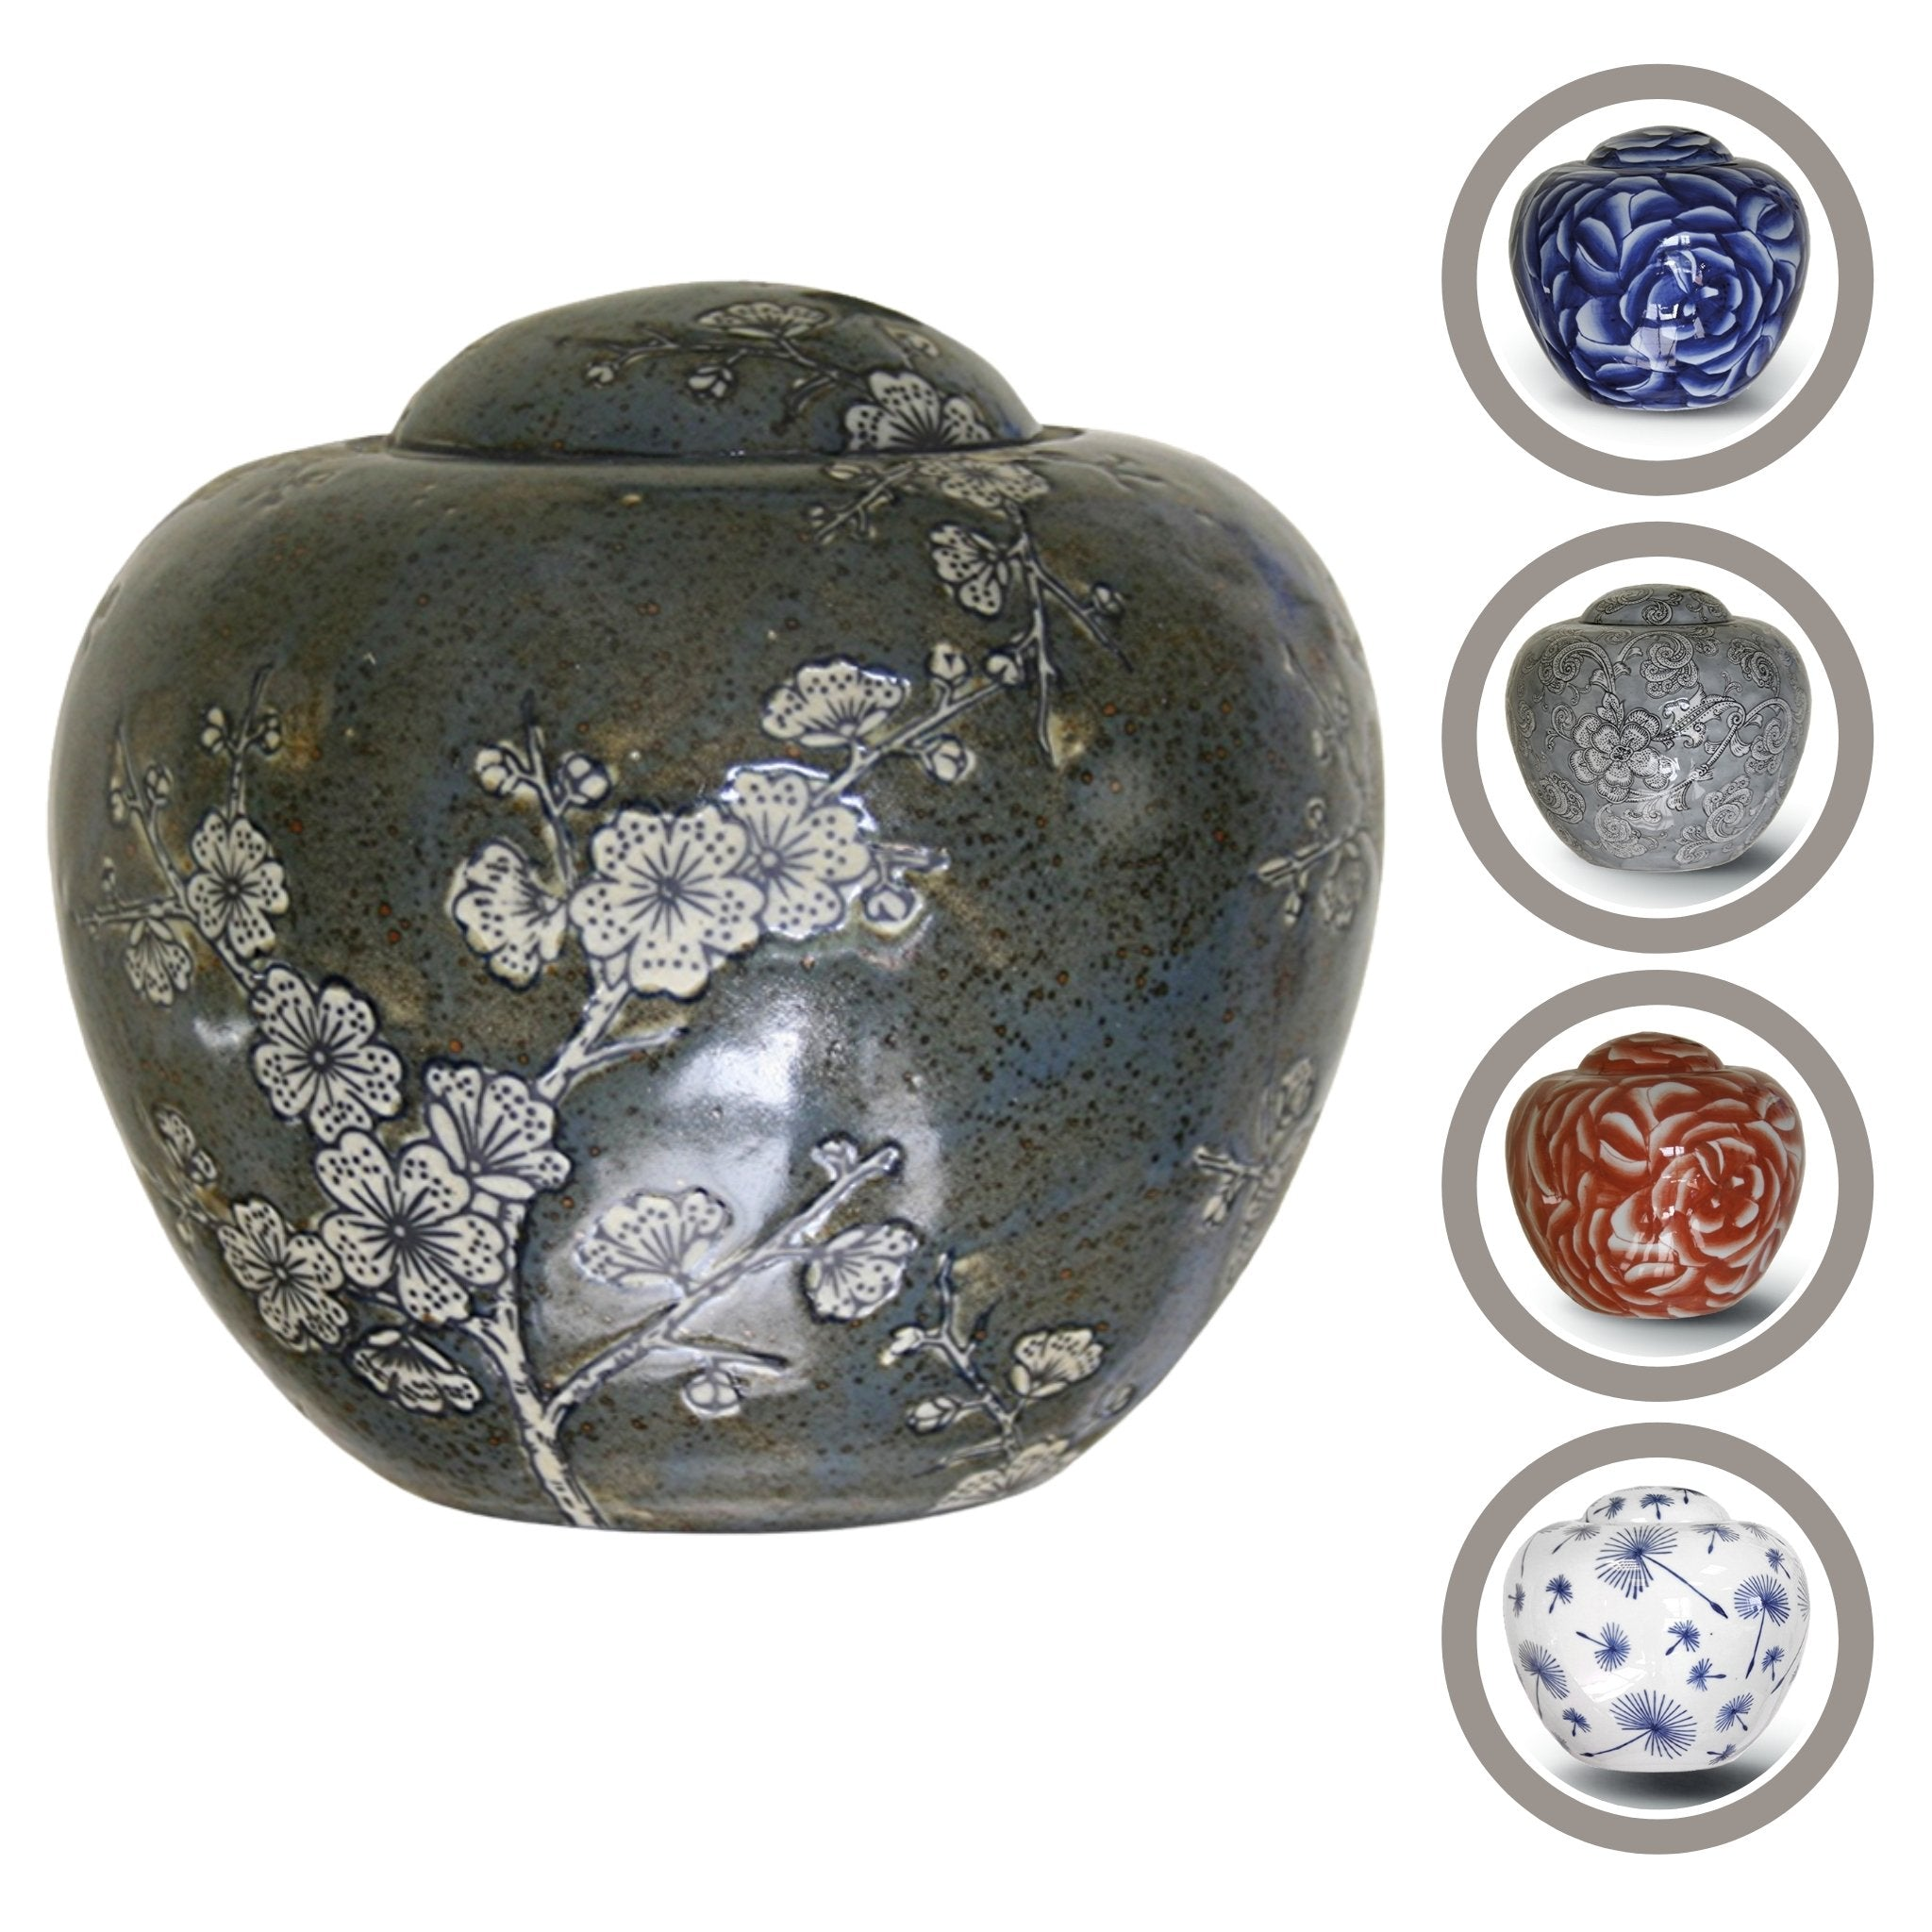 Anmer Adult Cremation Ashes Urn Range